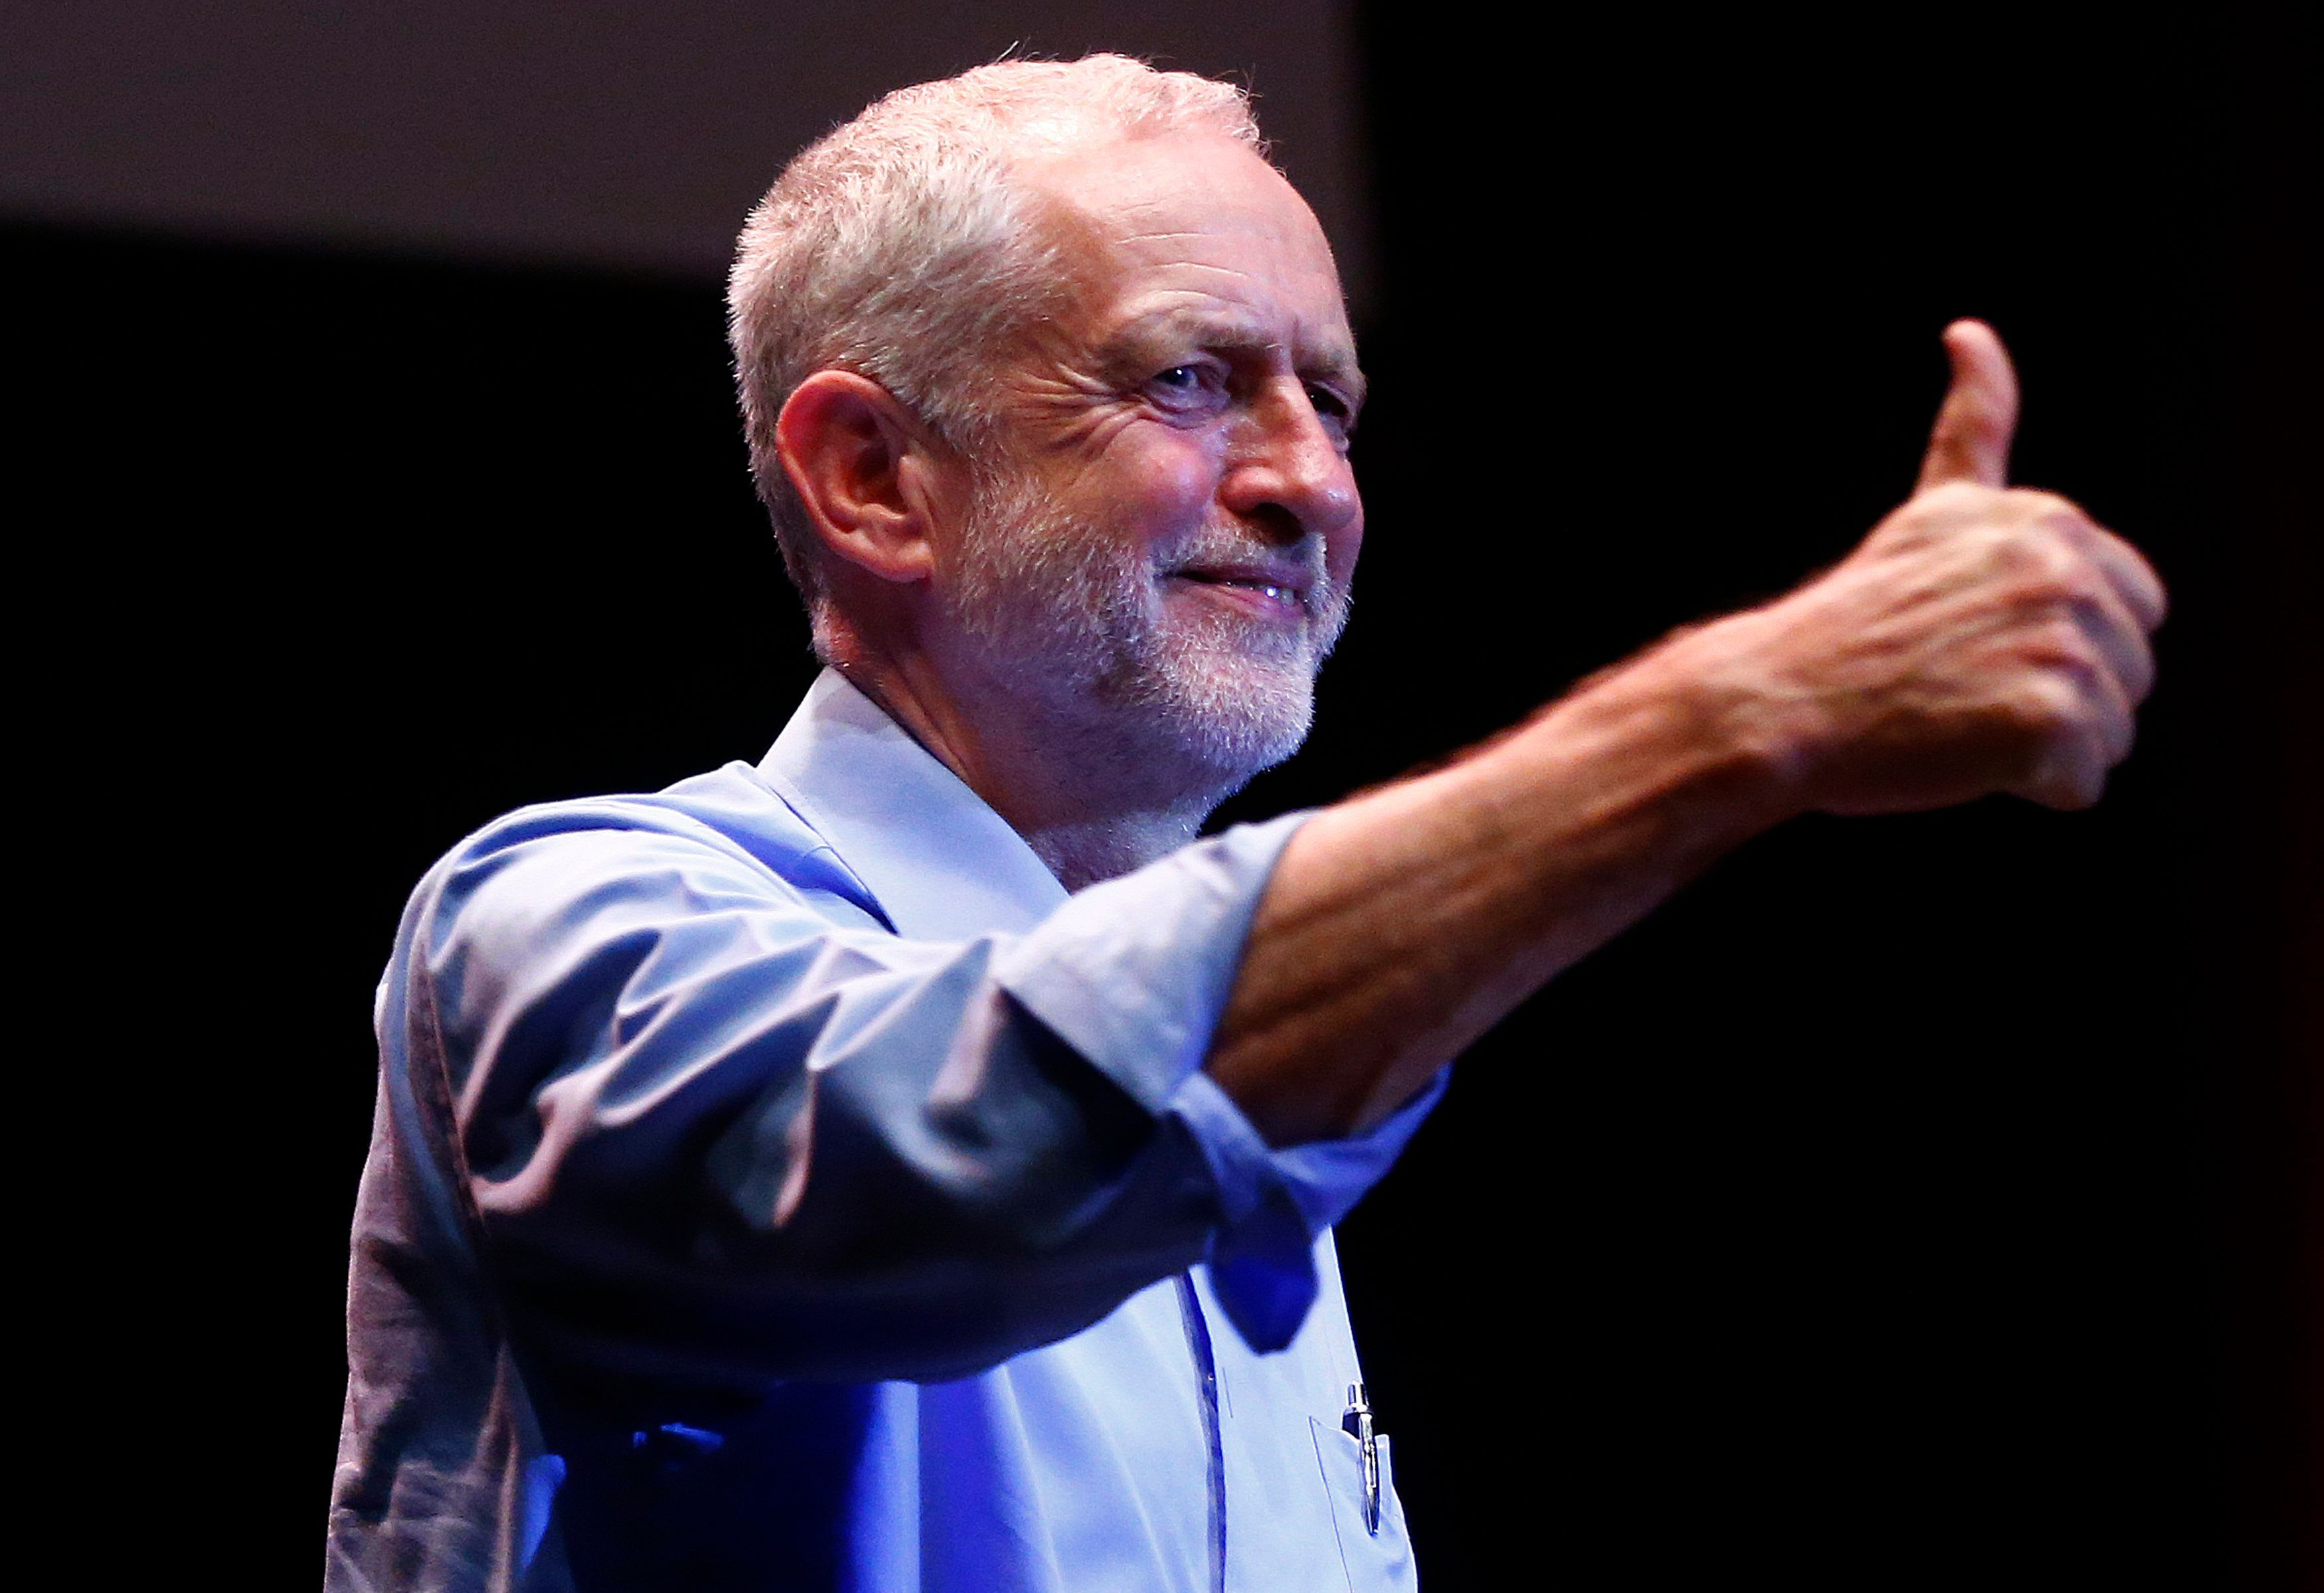 Thumbs up: UK oppositionleader Jeremy Corbynhas returned the Labour Party to its leftwing...